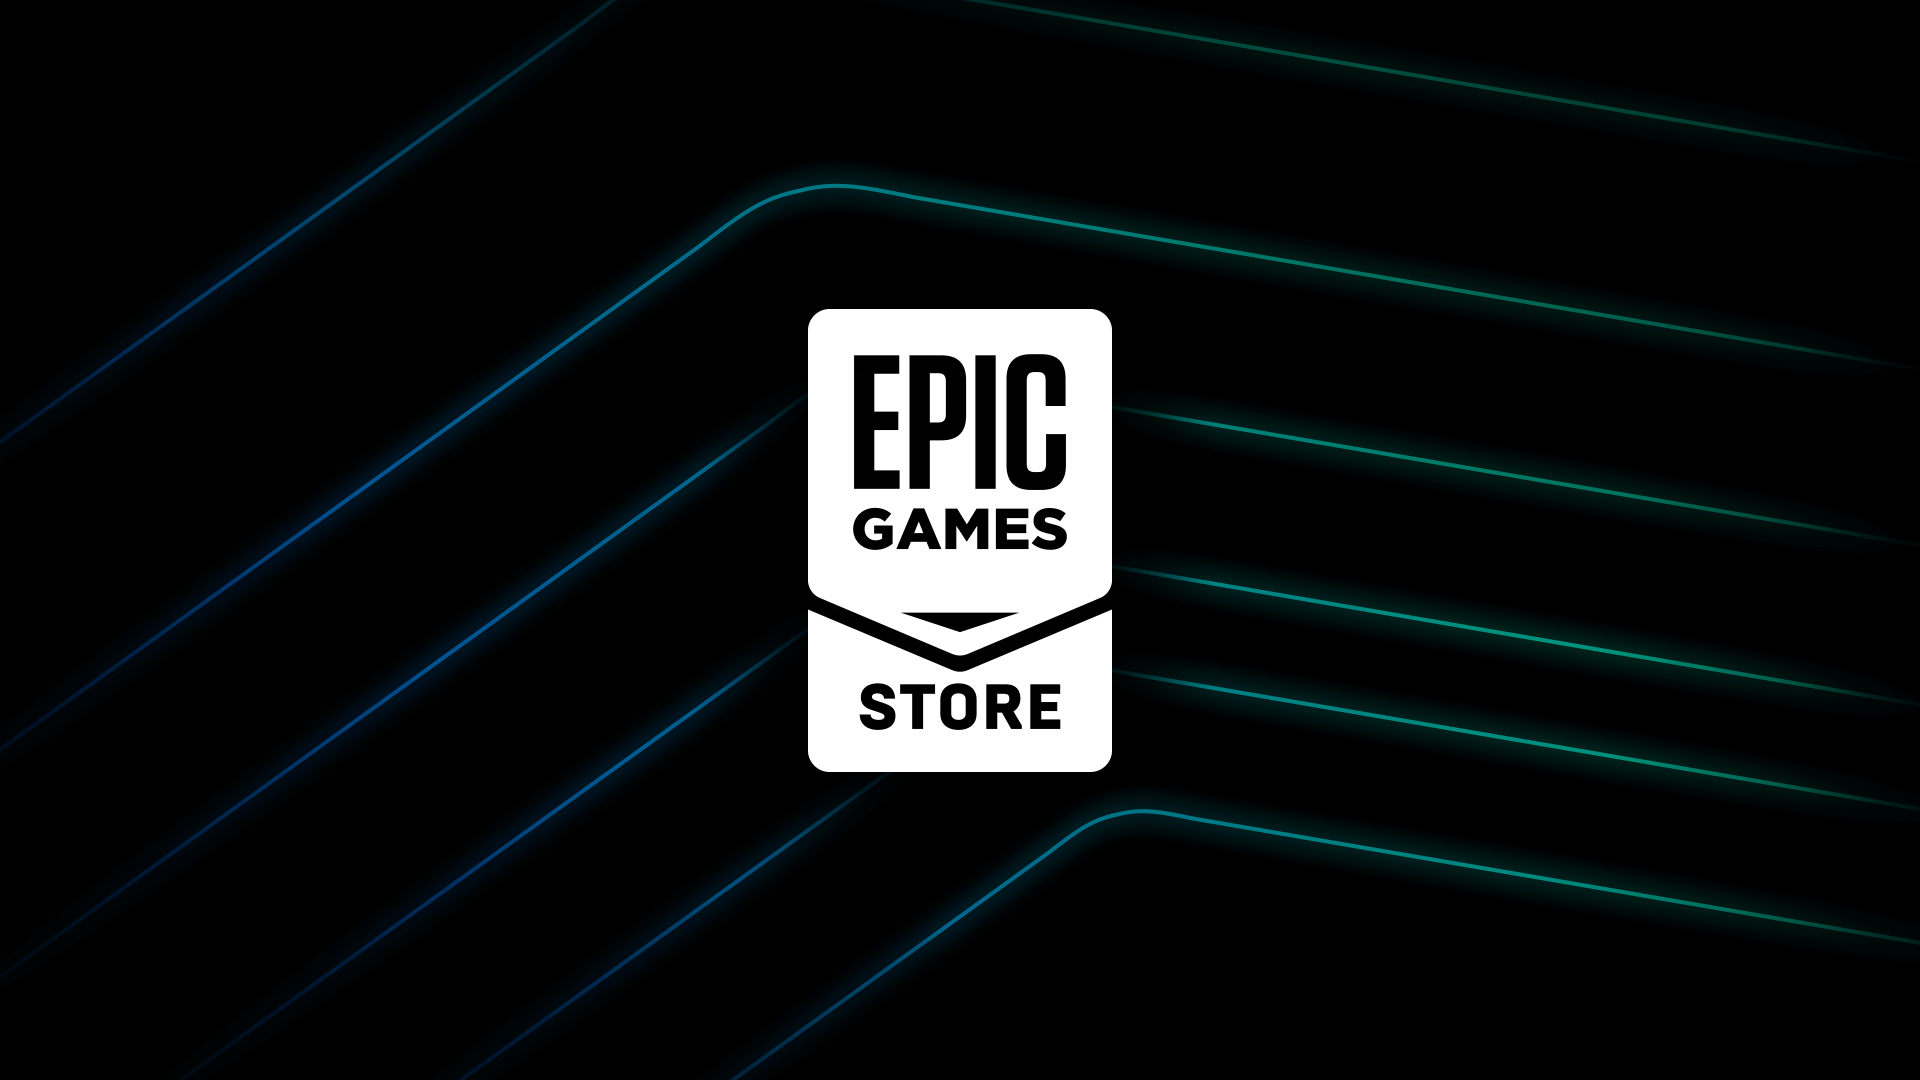 Epic Games, Epic Games Store, Fortnite, Epic, Games Store